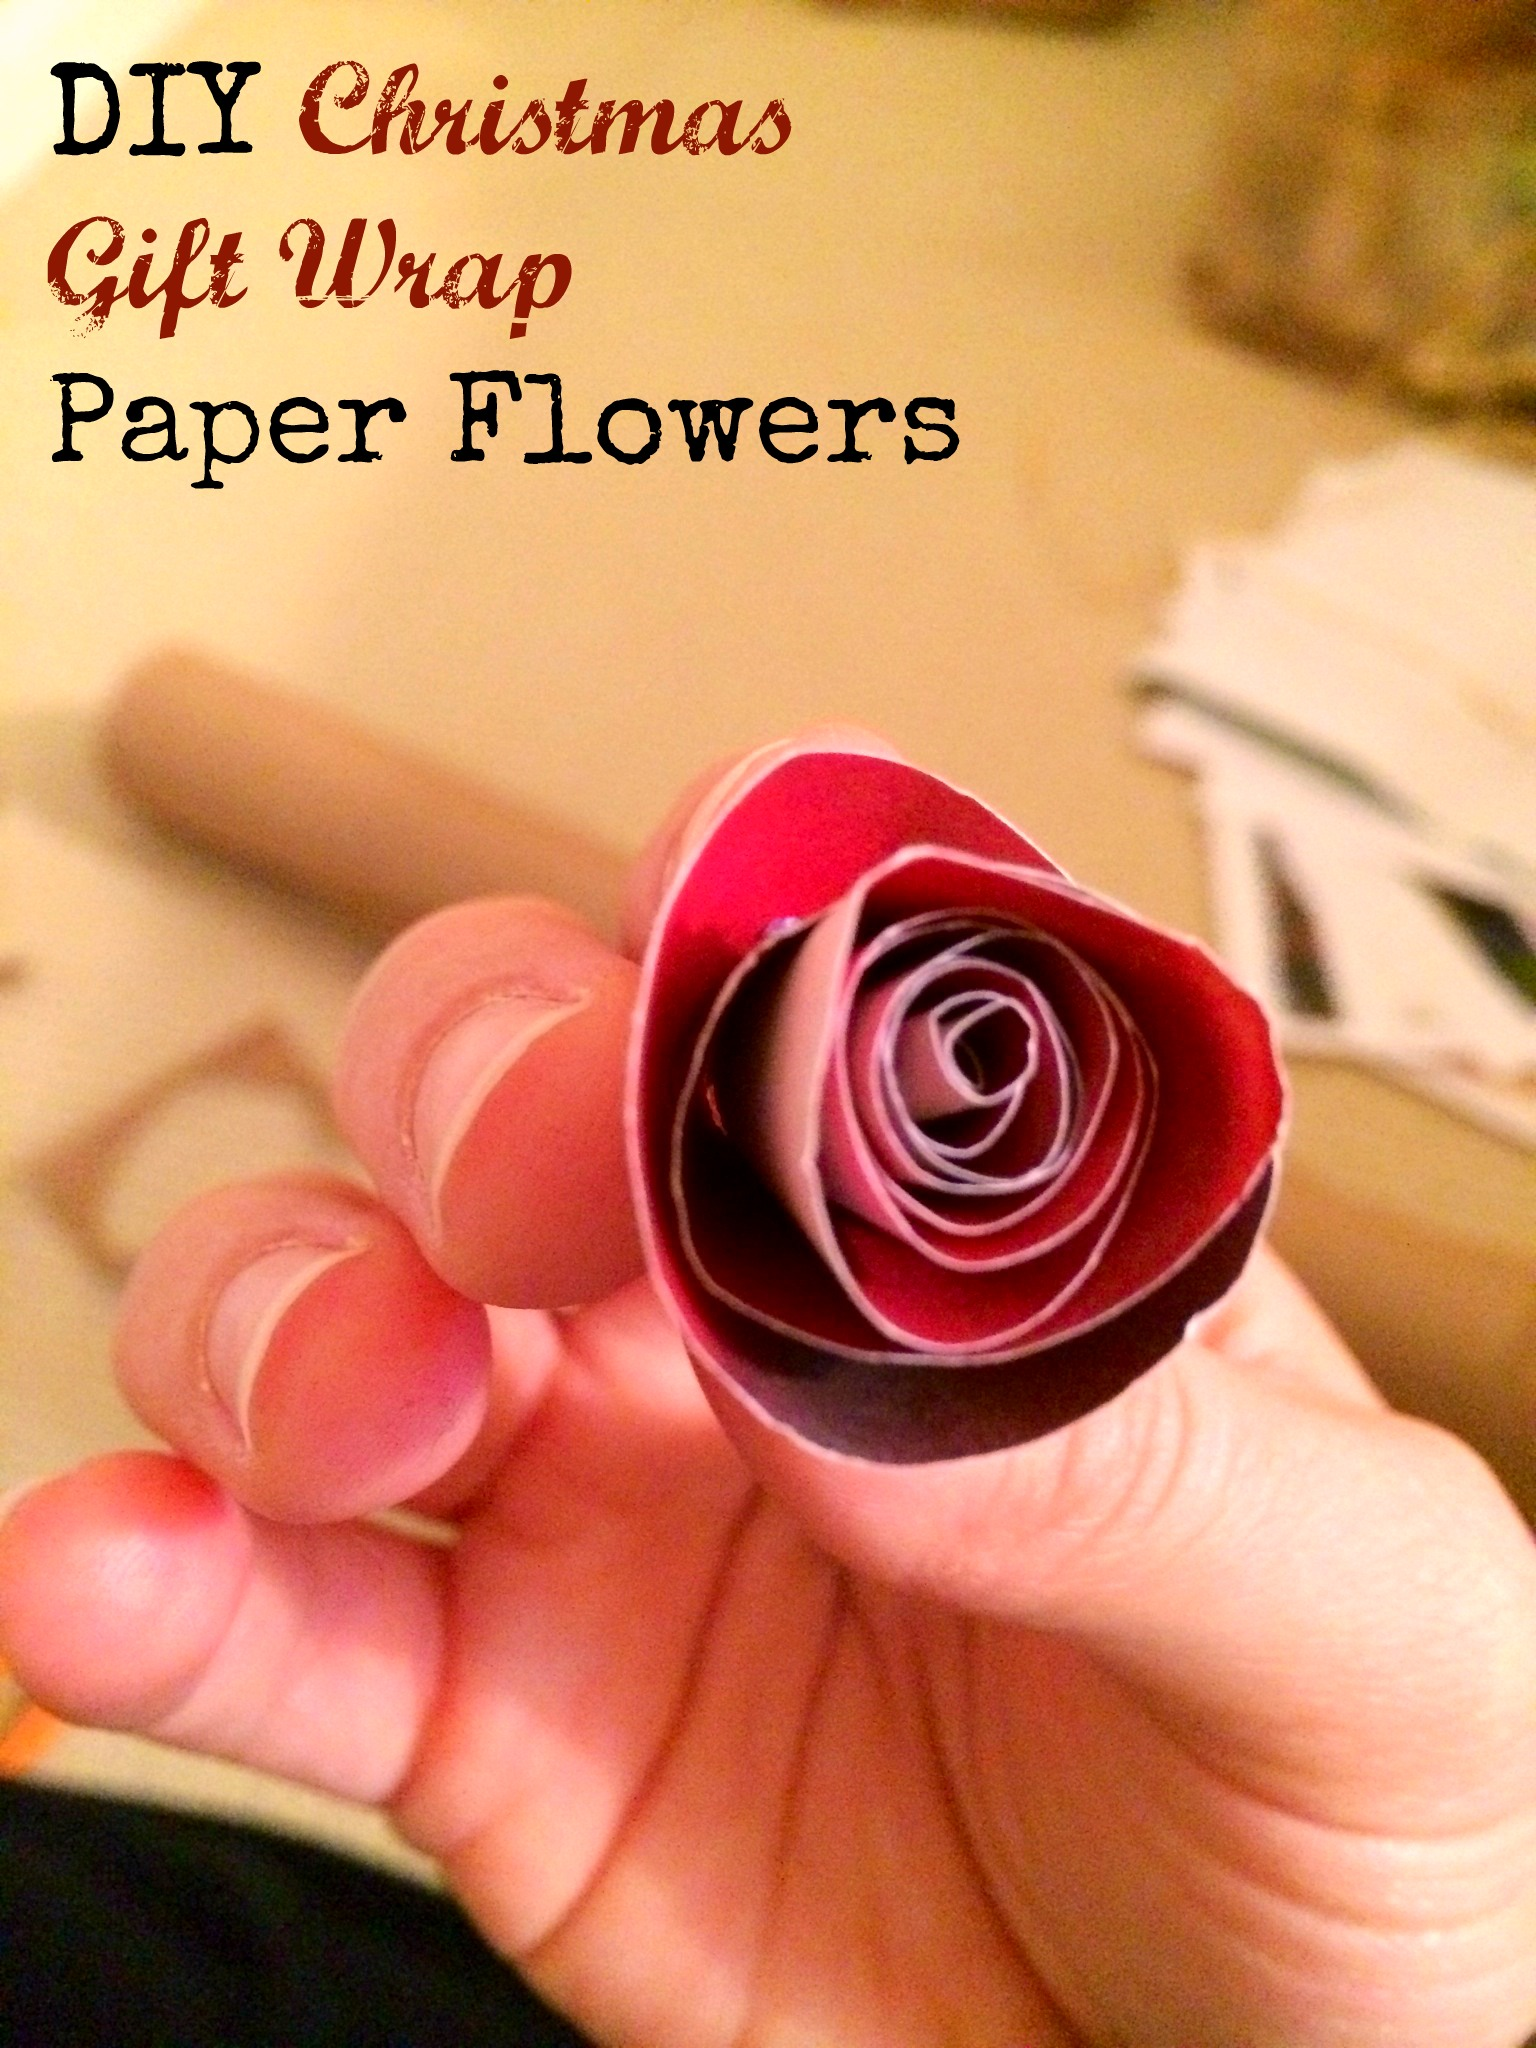 These DIY Paper Flowers Are Made Out Of Wrapping Paper And Are So Cute And  Easy